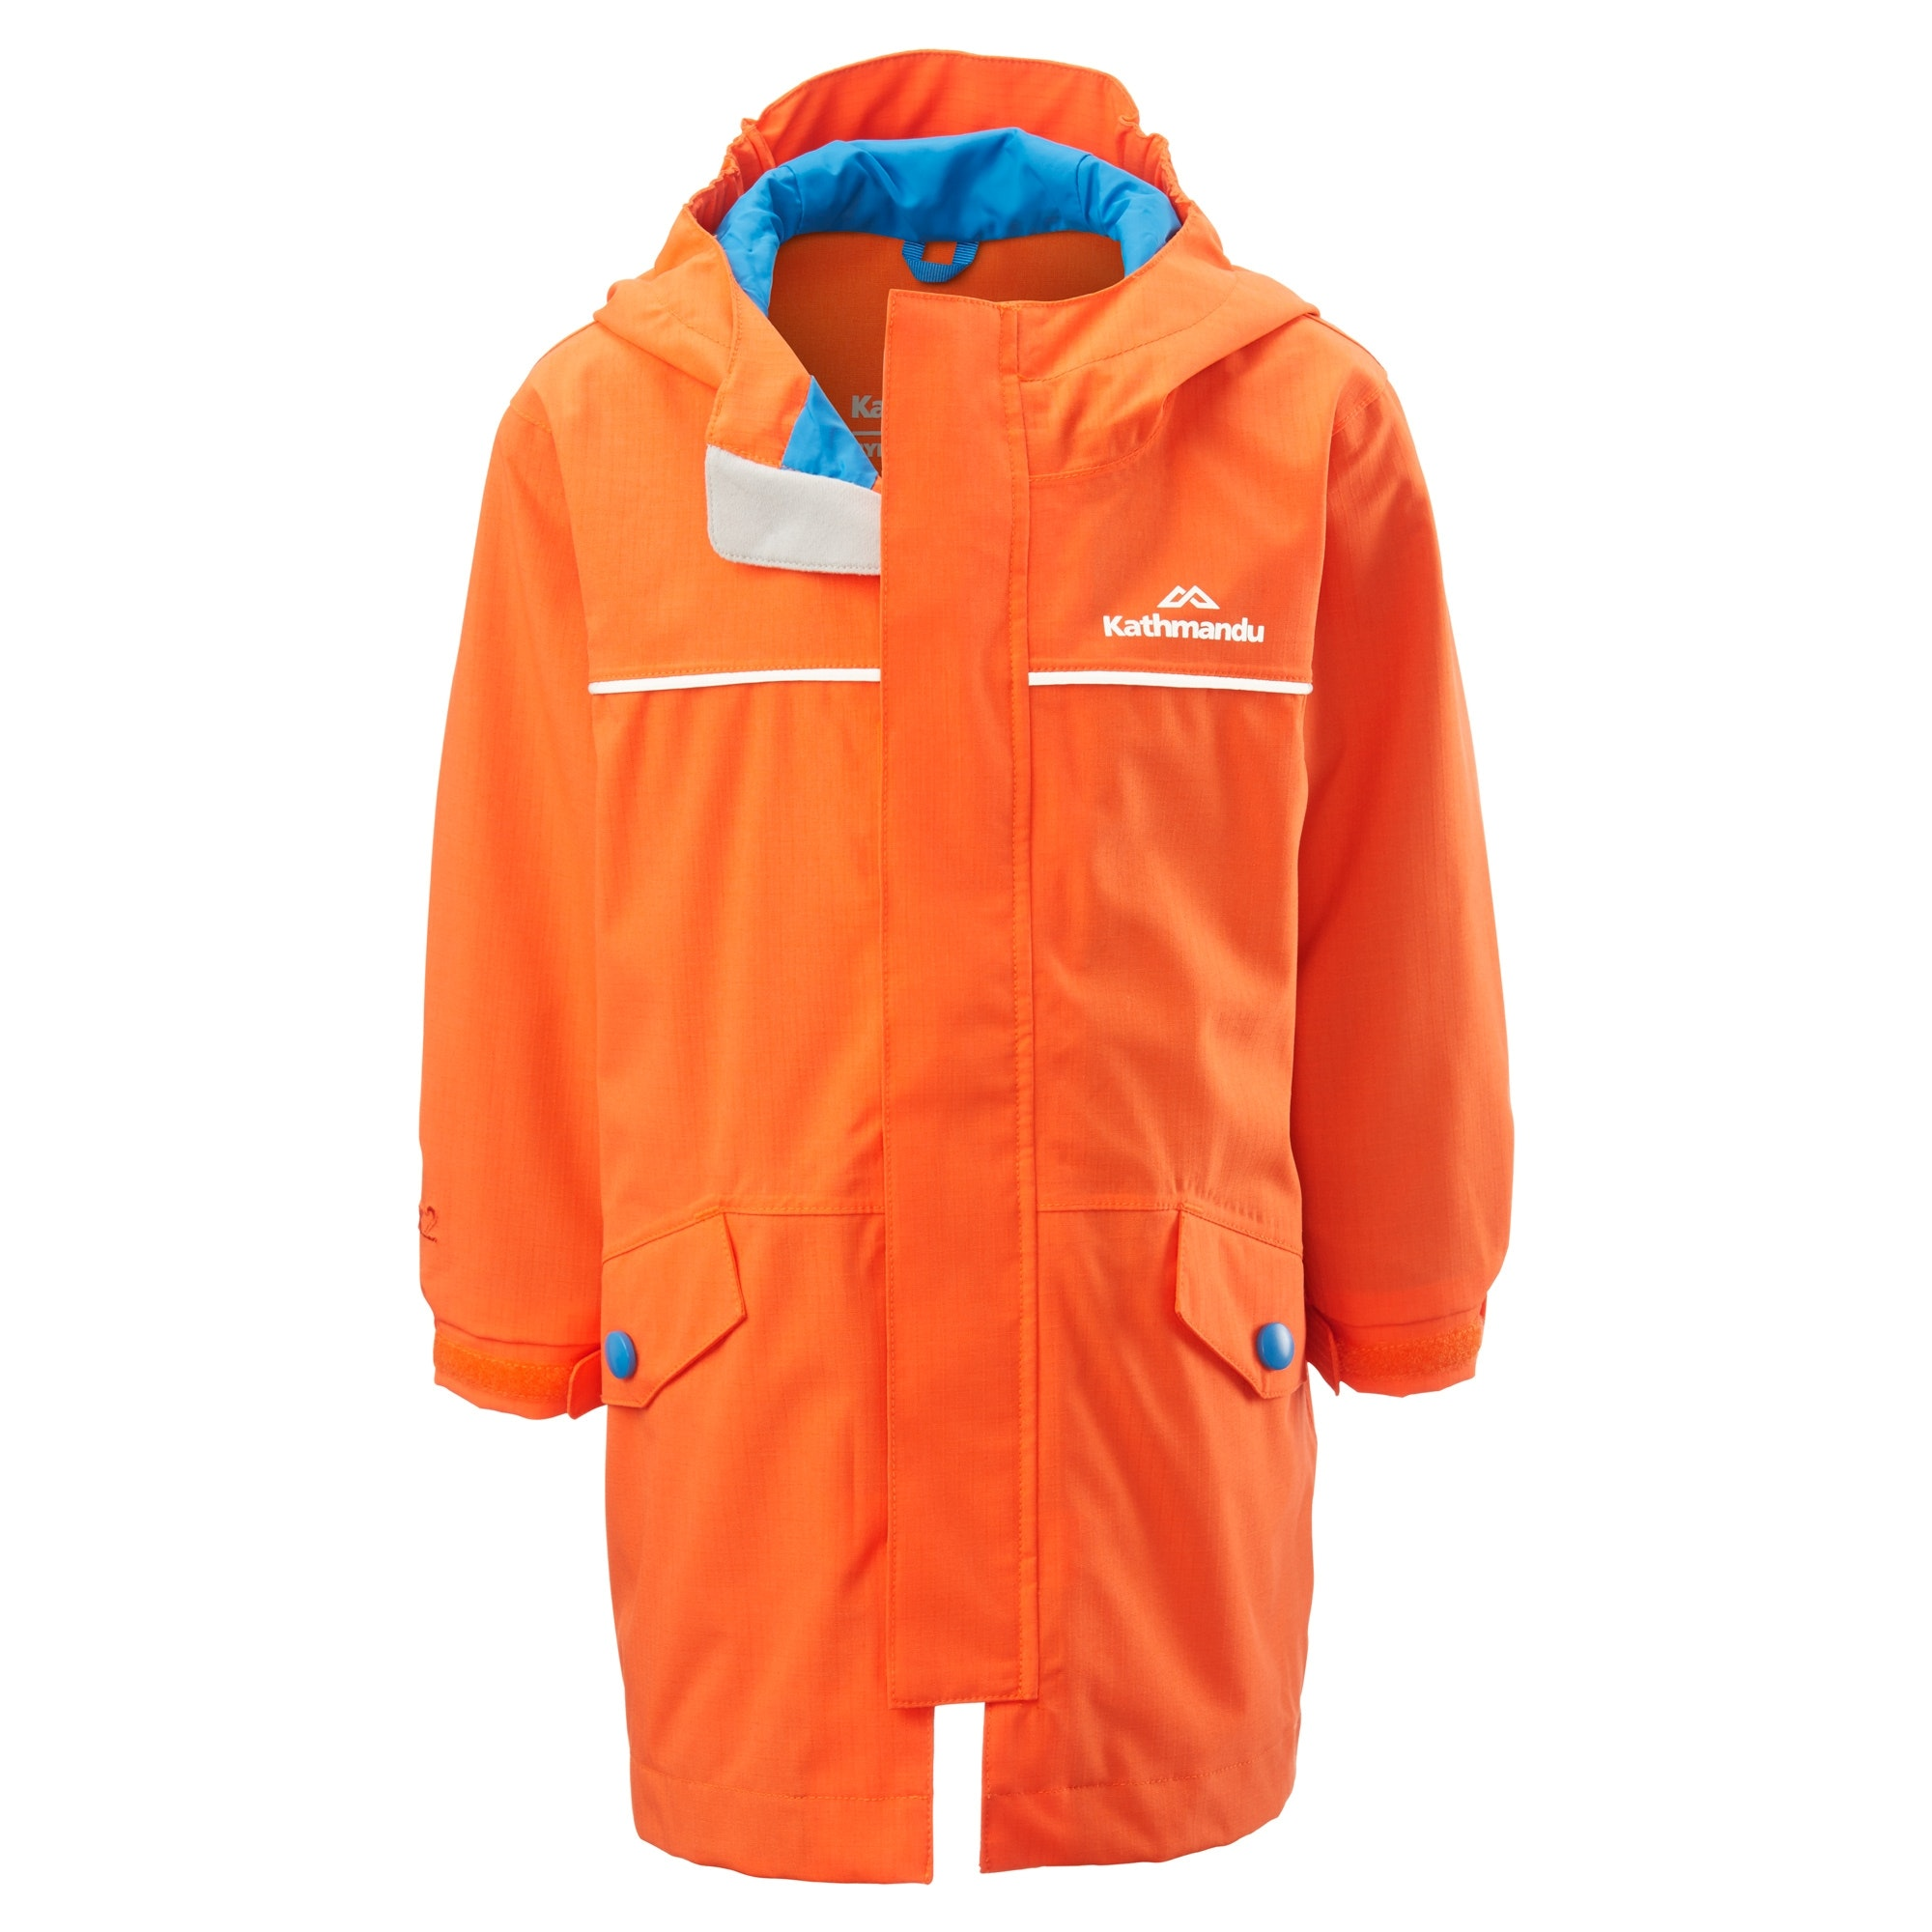 46afede0a14e Boys and Girls Waterproof   Rain Jackets - Australia